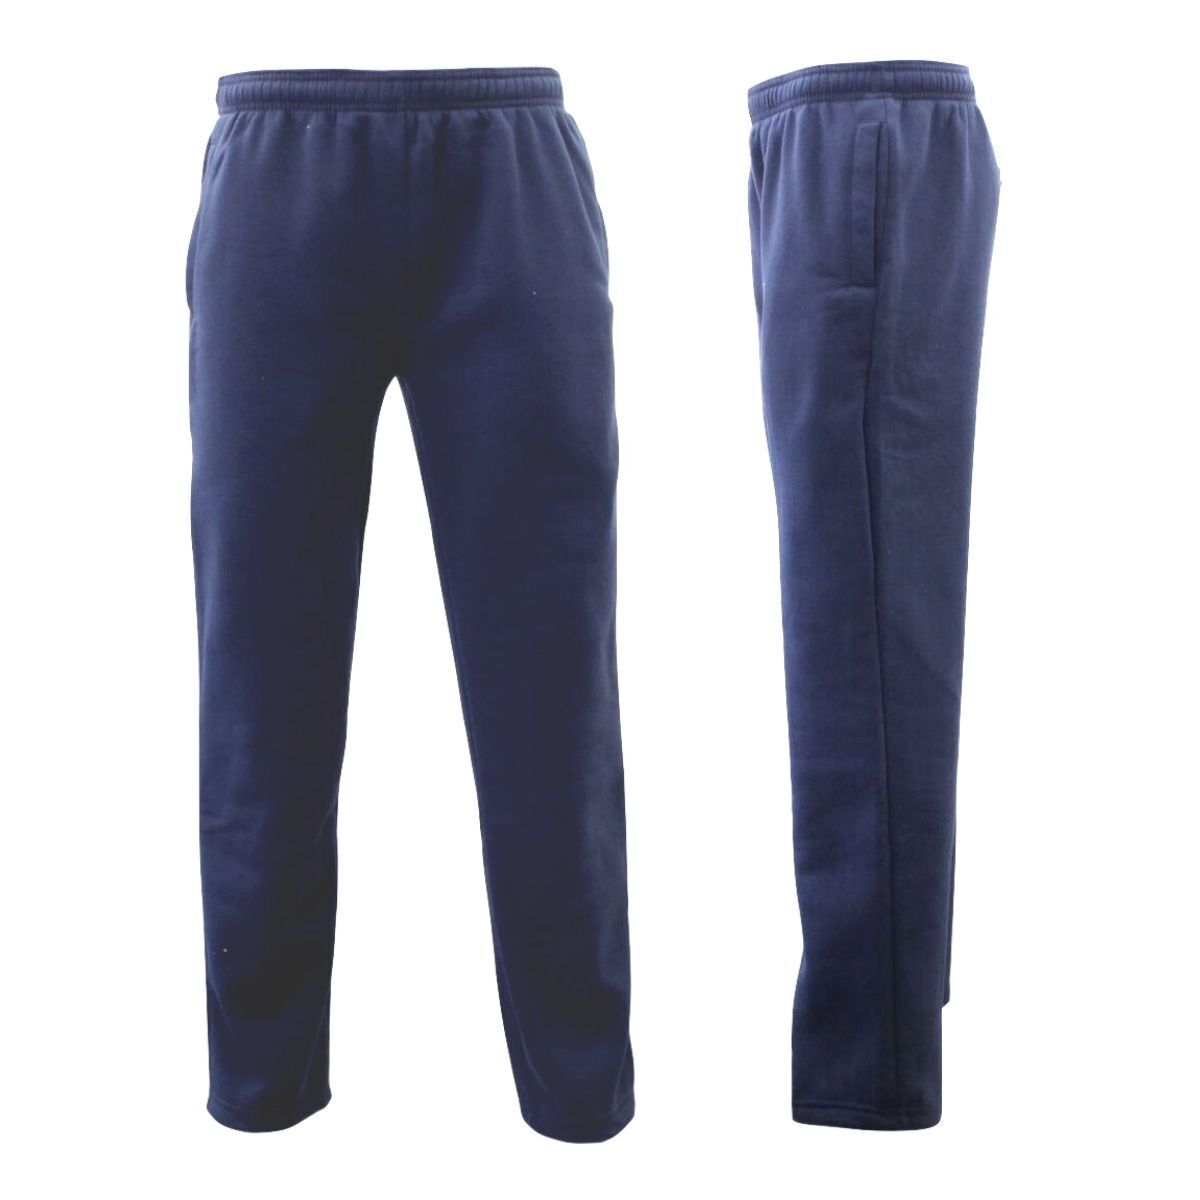 Men-039-s-Fleece-Lined-Track-Pants-Track-Suit-Pants-Casual-Winter-Elastic-Waist-B thumbnail 8